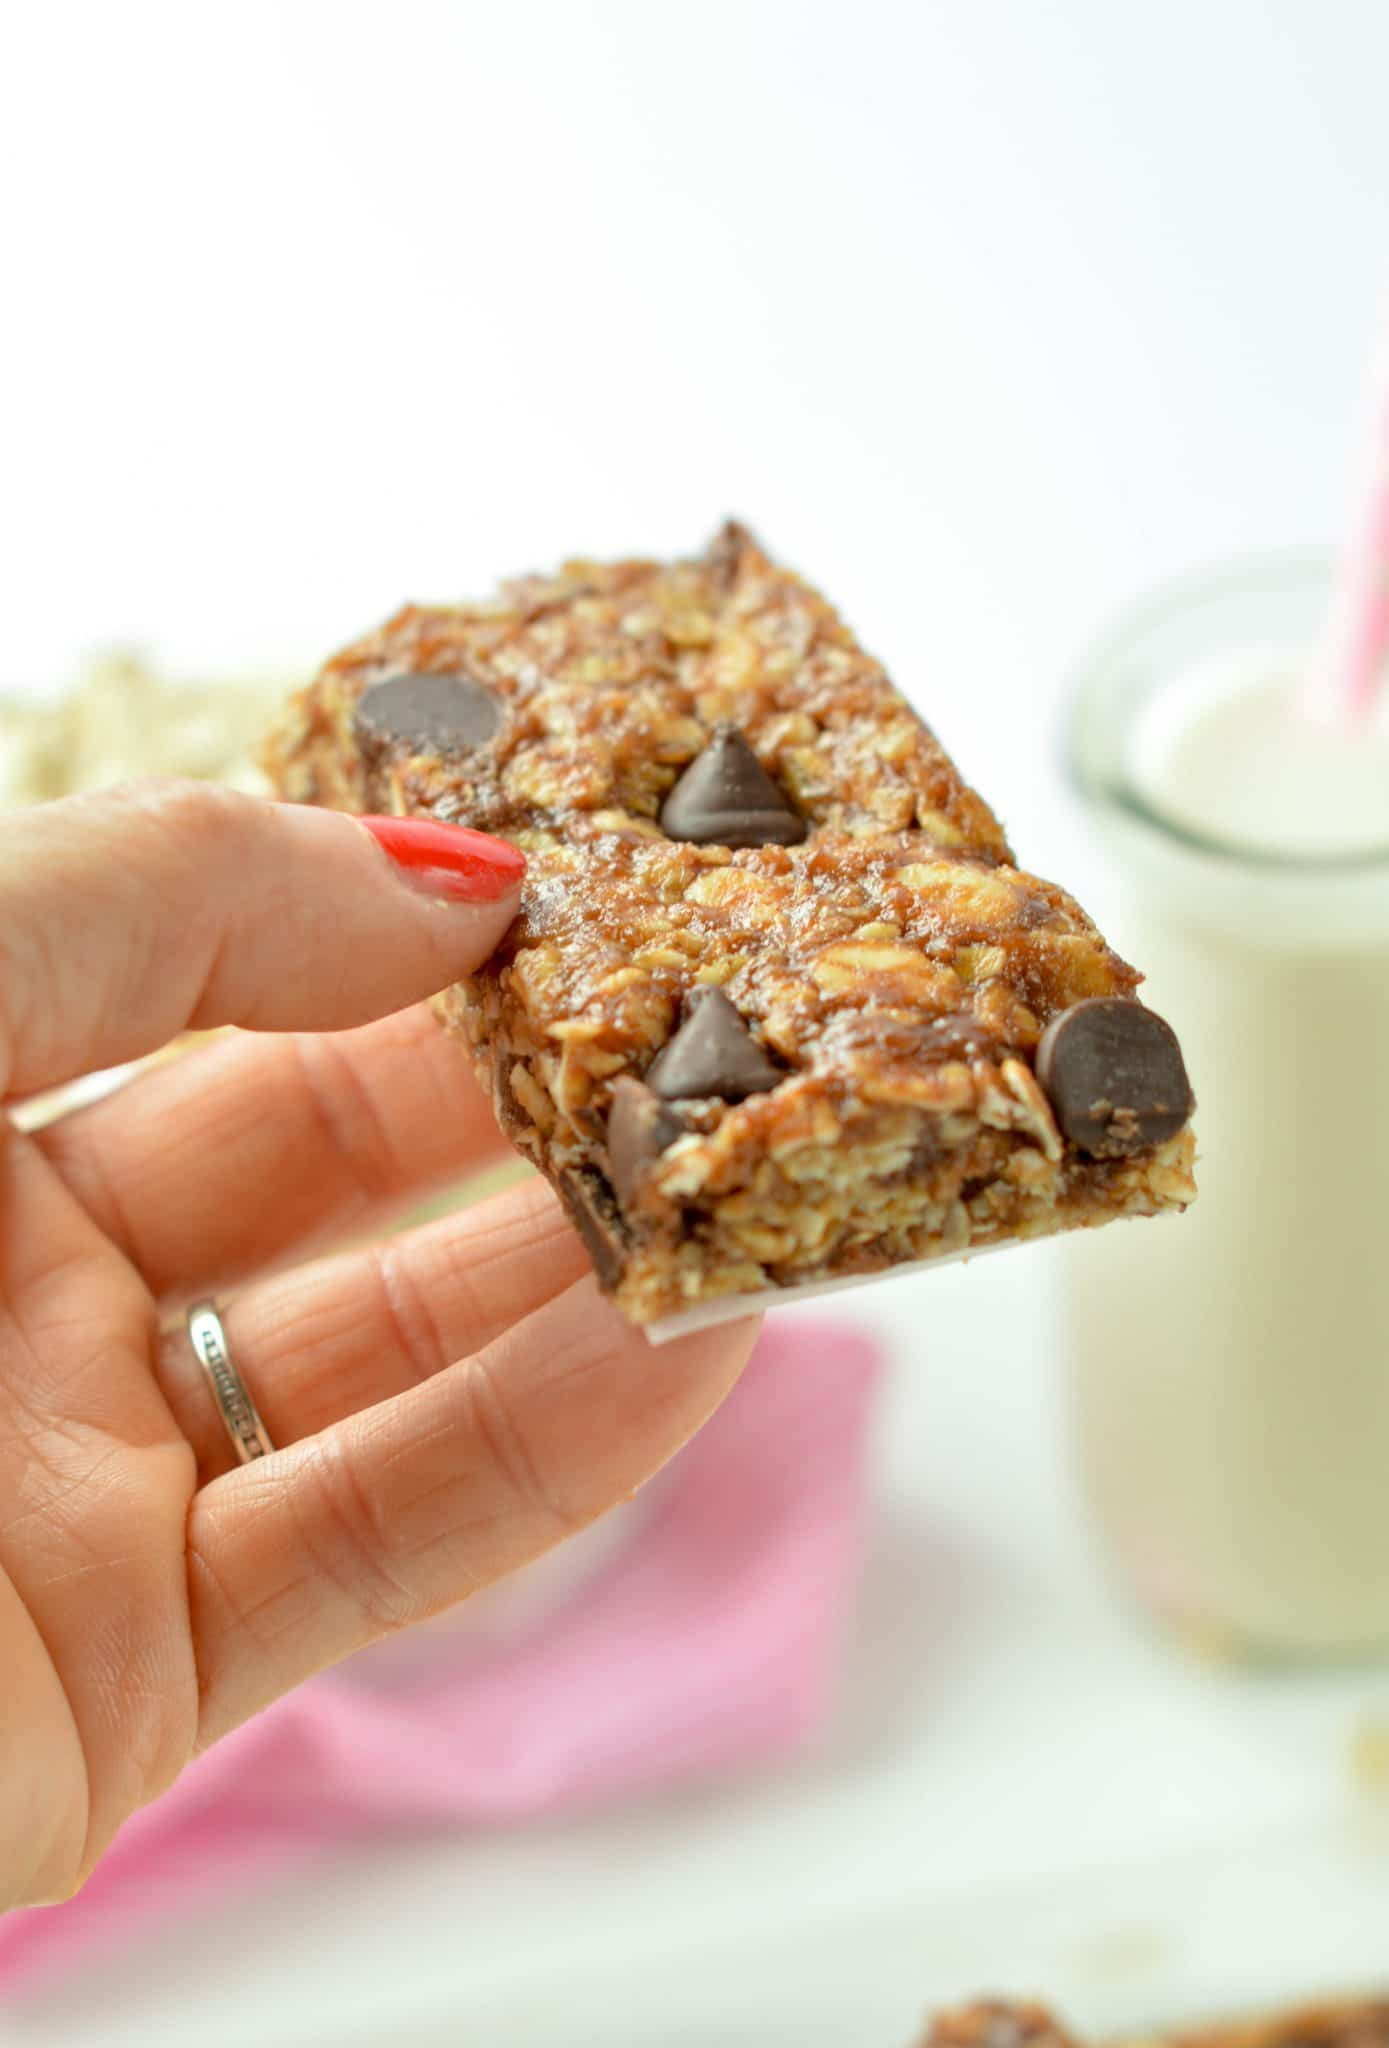 Peanut Butter Oatmeal Protein Bars an easy clean eating protein bar with only 5 ingredients. Healthy, no bake, vegan.